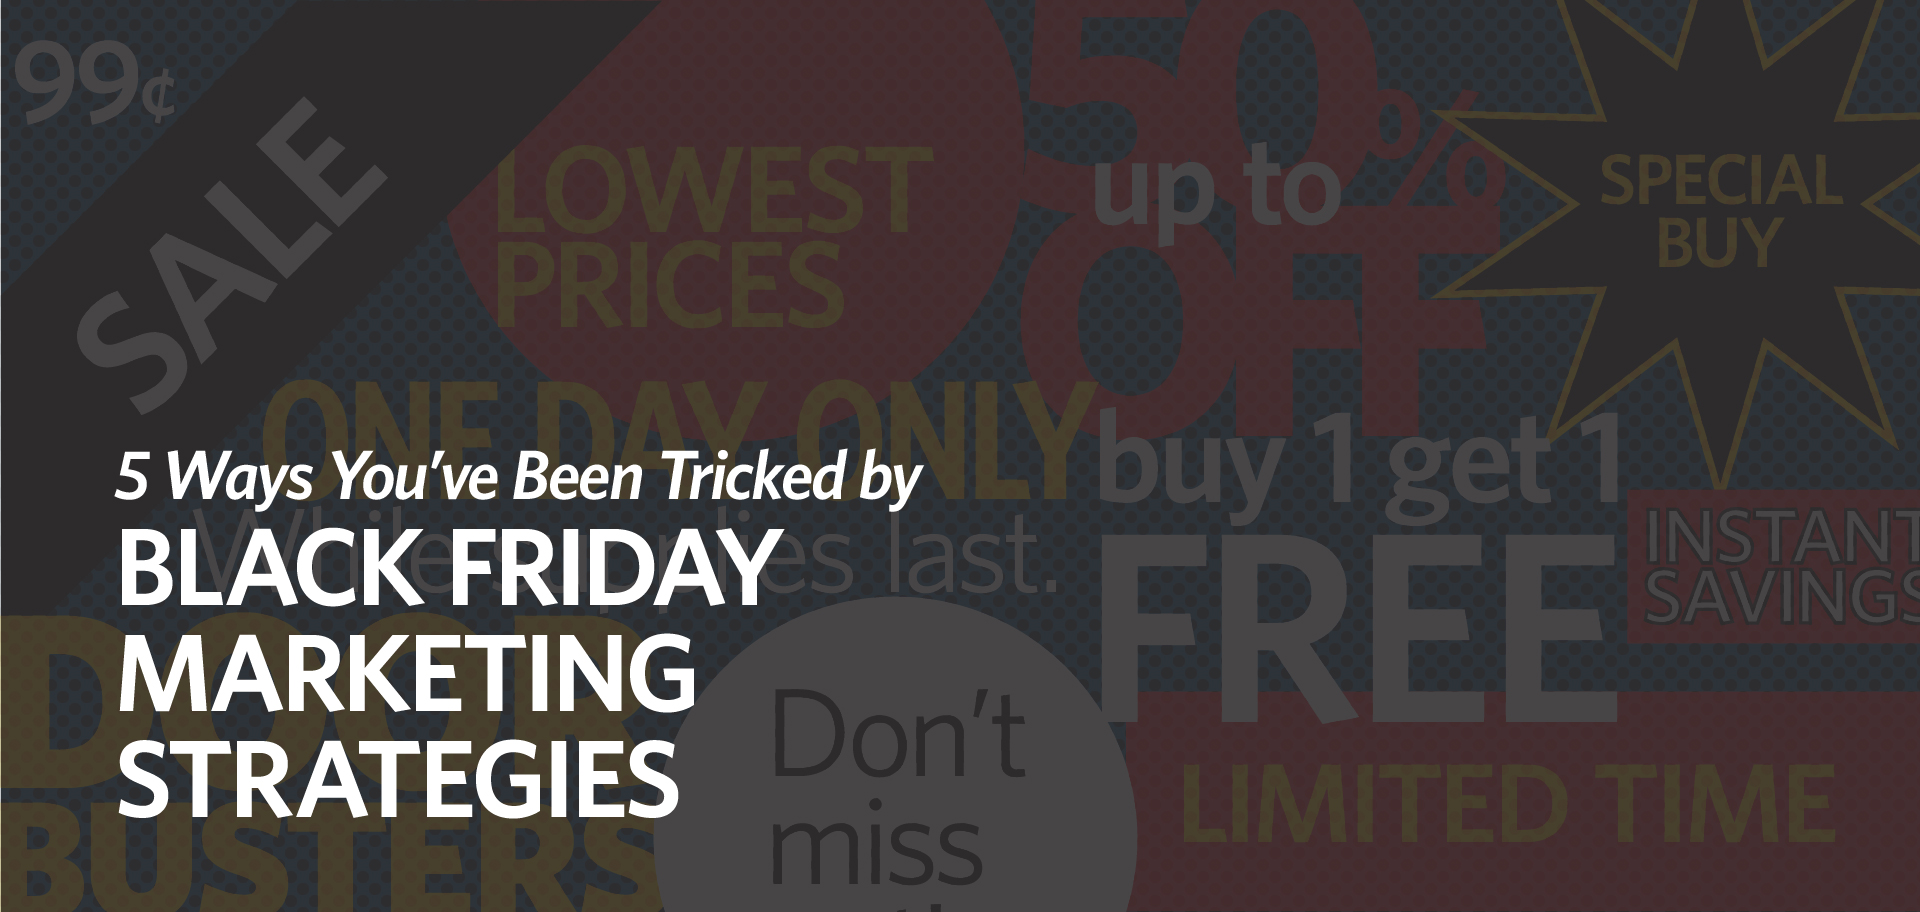 Black Friday Marketing Strategies Kettle Fire Creative black friday 5 Ways You've Been Tricked by Black Friday Marketing Strategies black friday fi